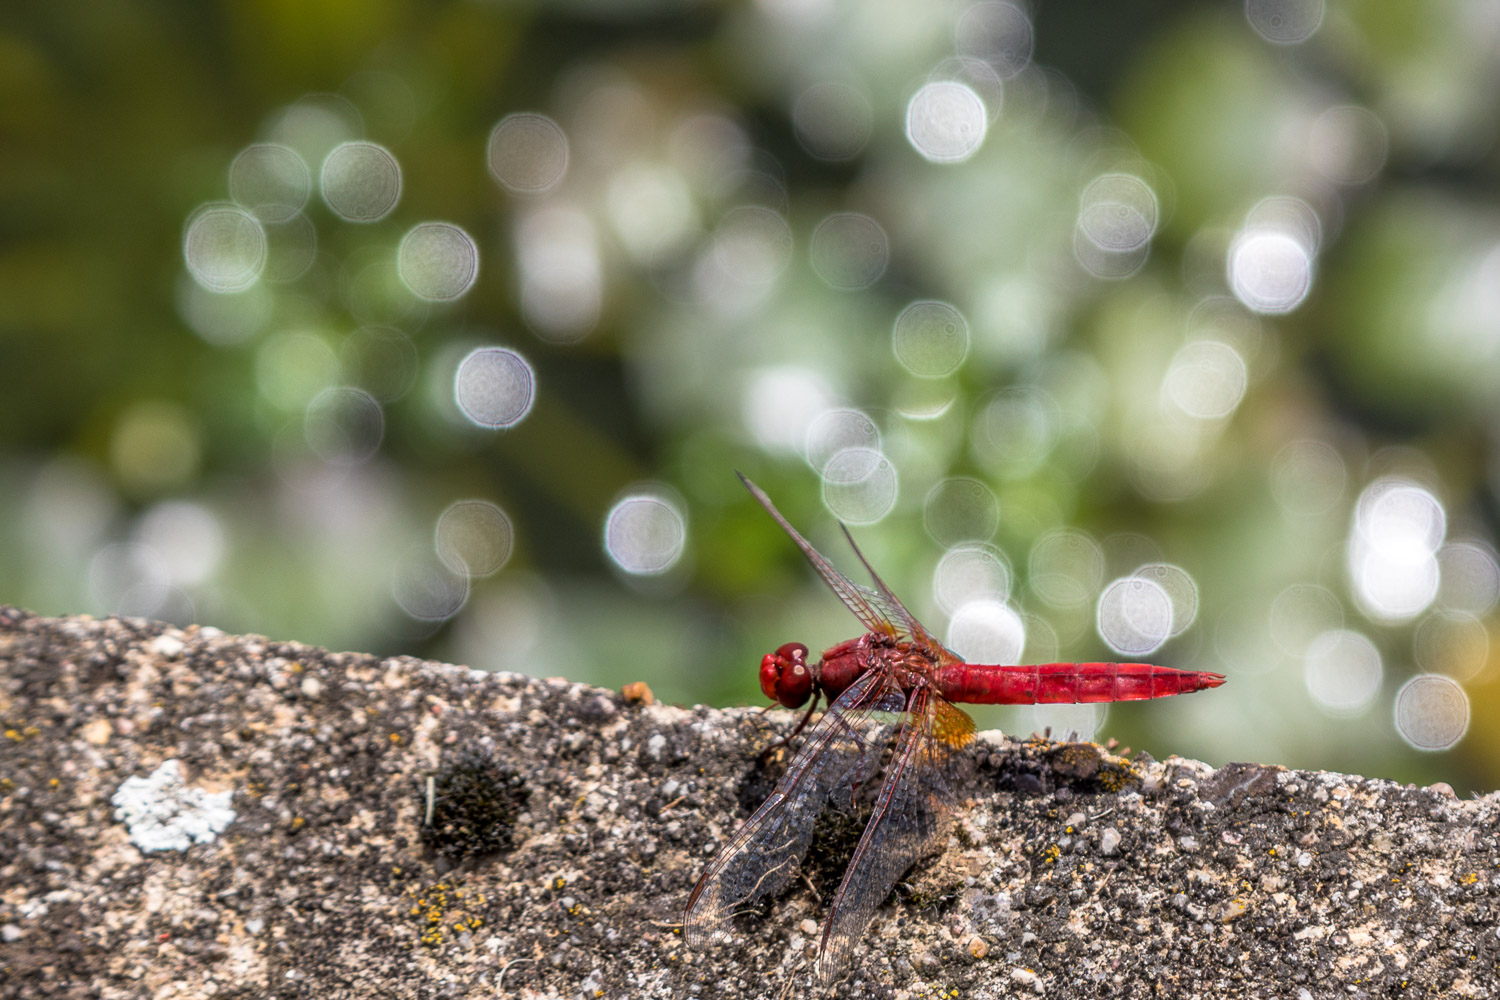 Scarlet Dragonfly, Lake Guichard